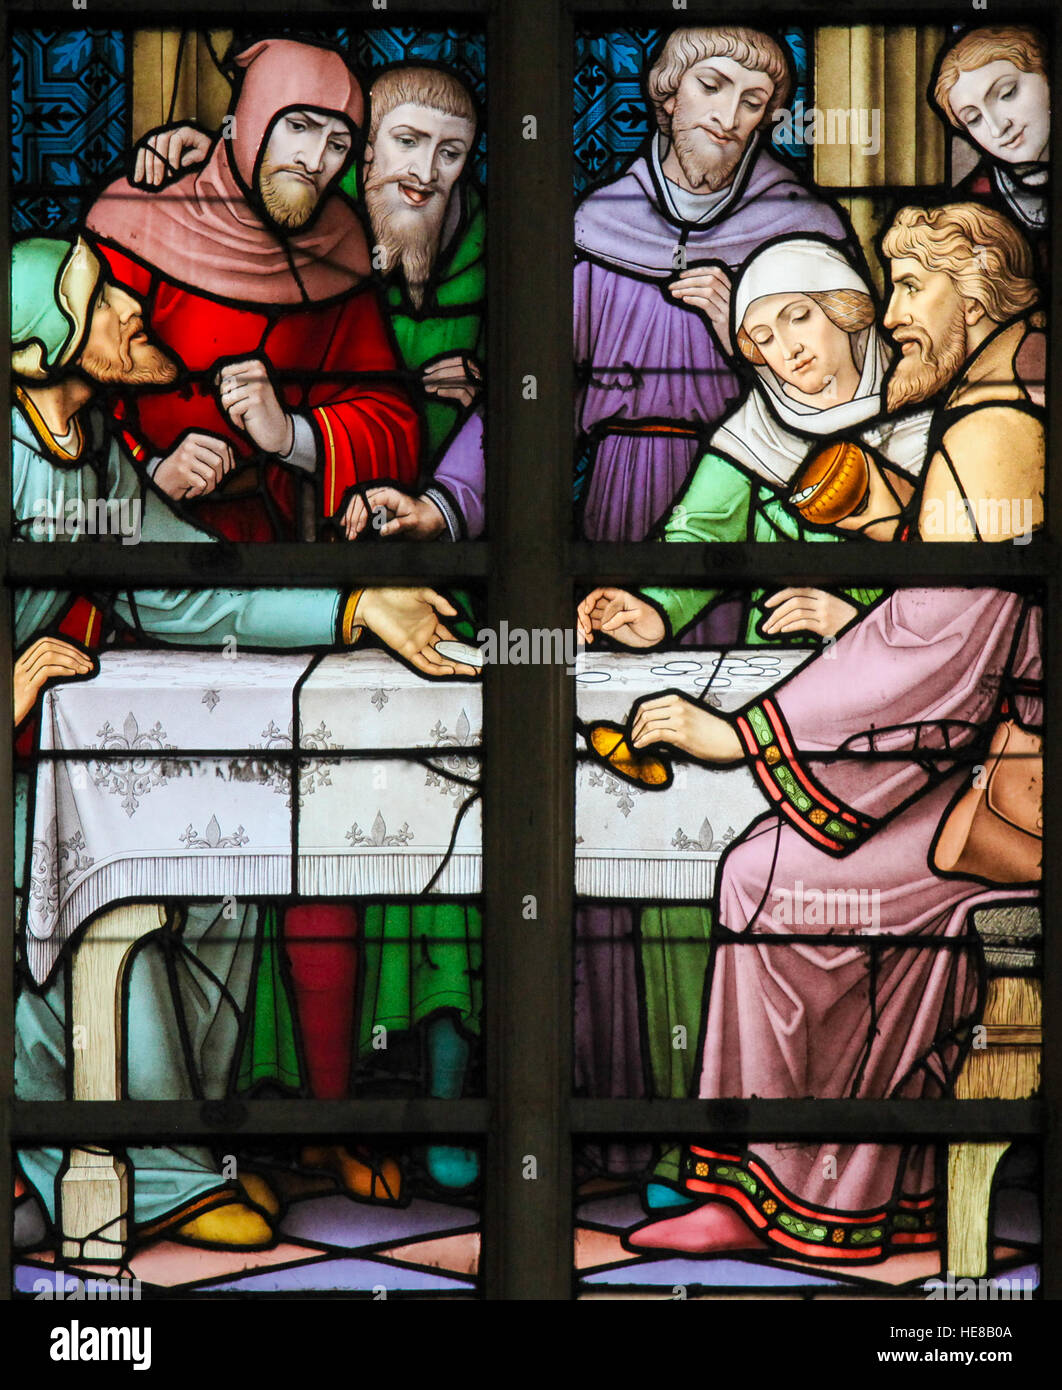 Stained Glass depicting the legend of Jews stealing sacramental bread, in the Cathedral of Brussels, Belgium. This - Stock Image